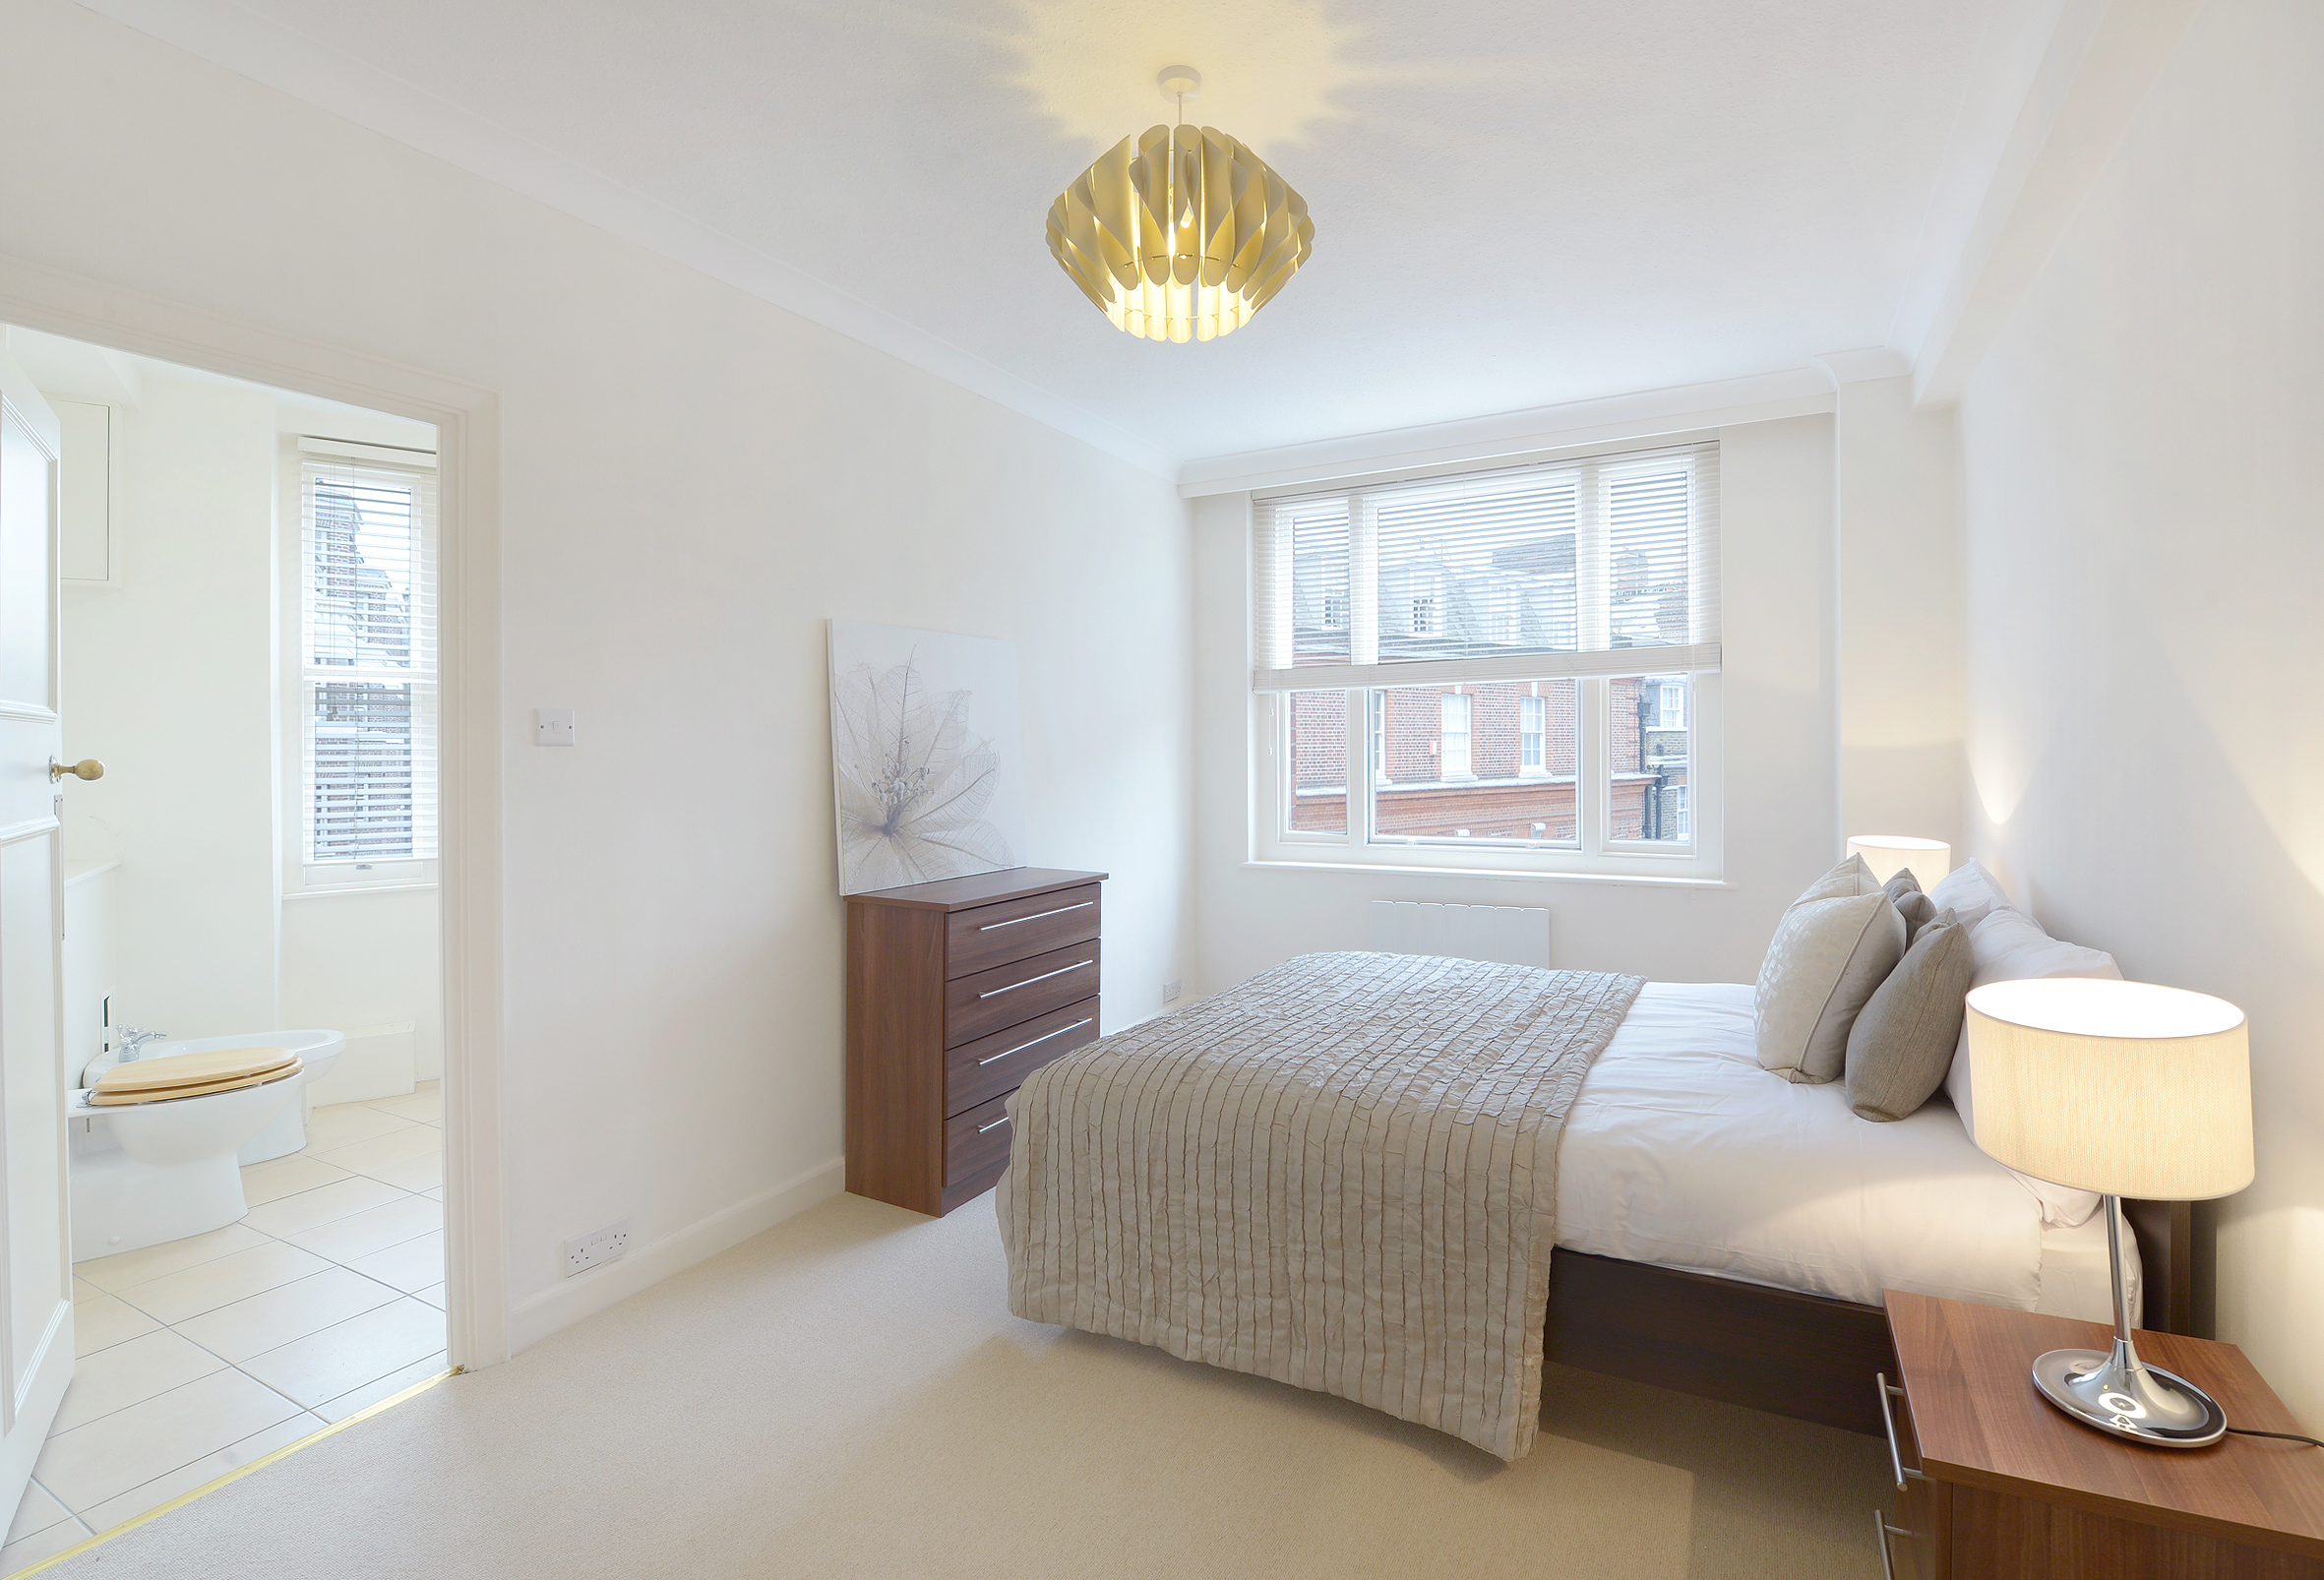 2 Bedroom Flat To Rent Hill Street London W W1j 5ly